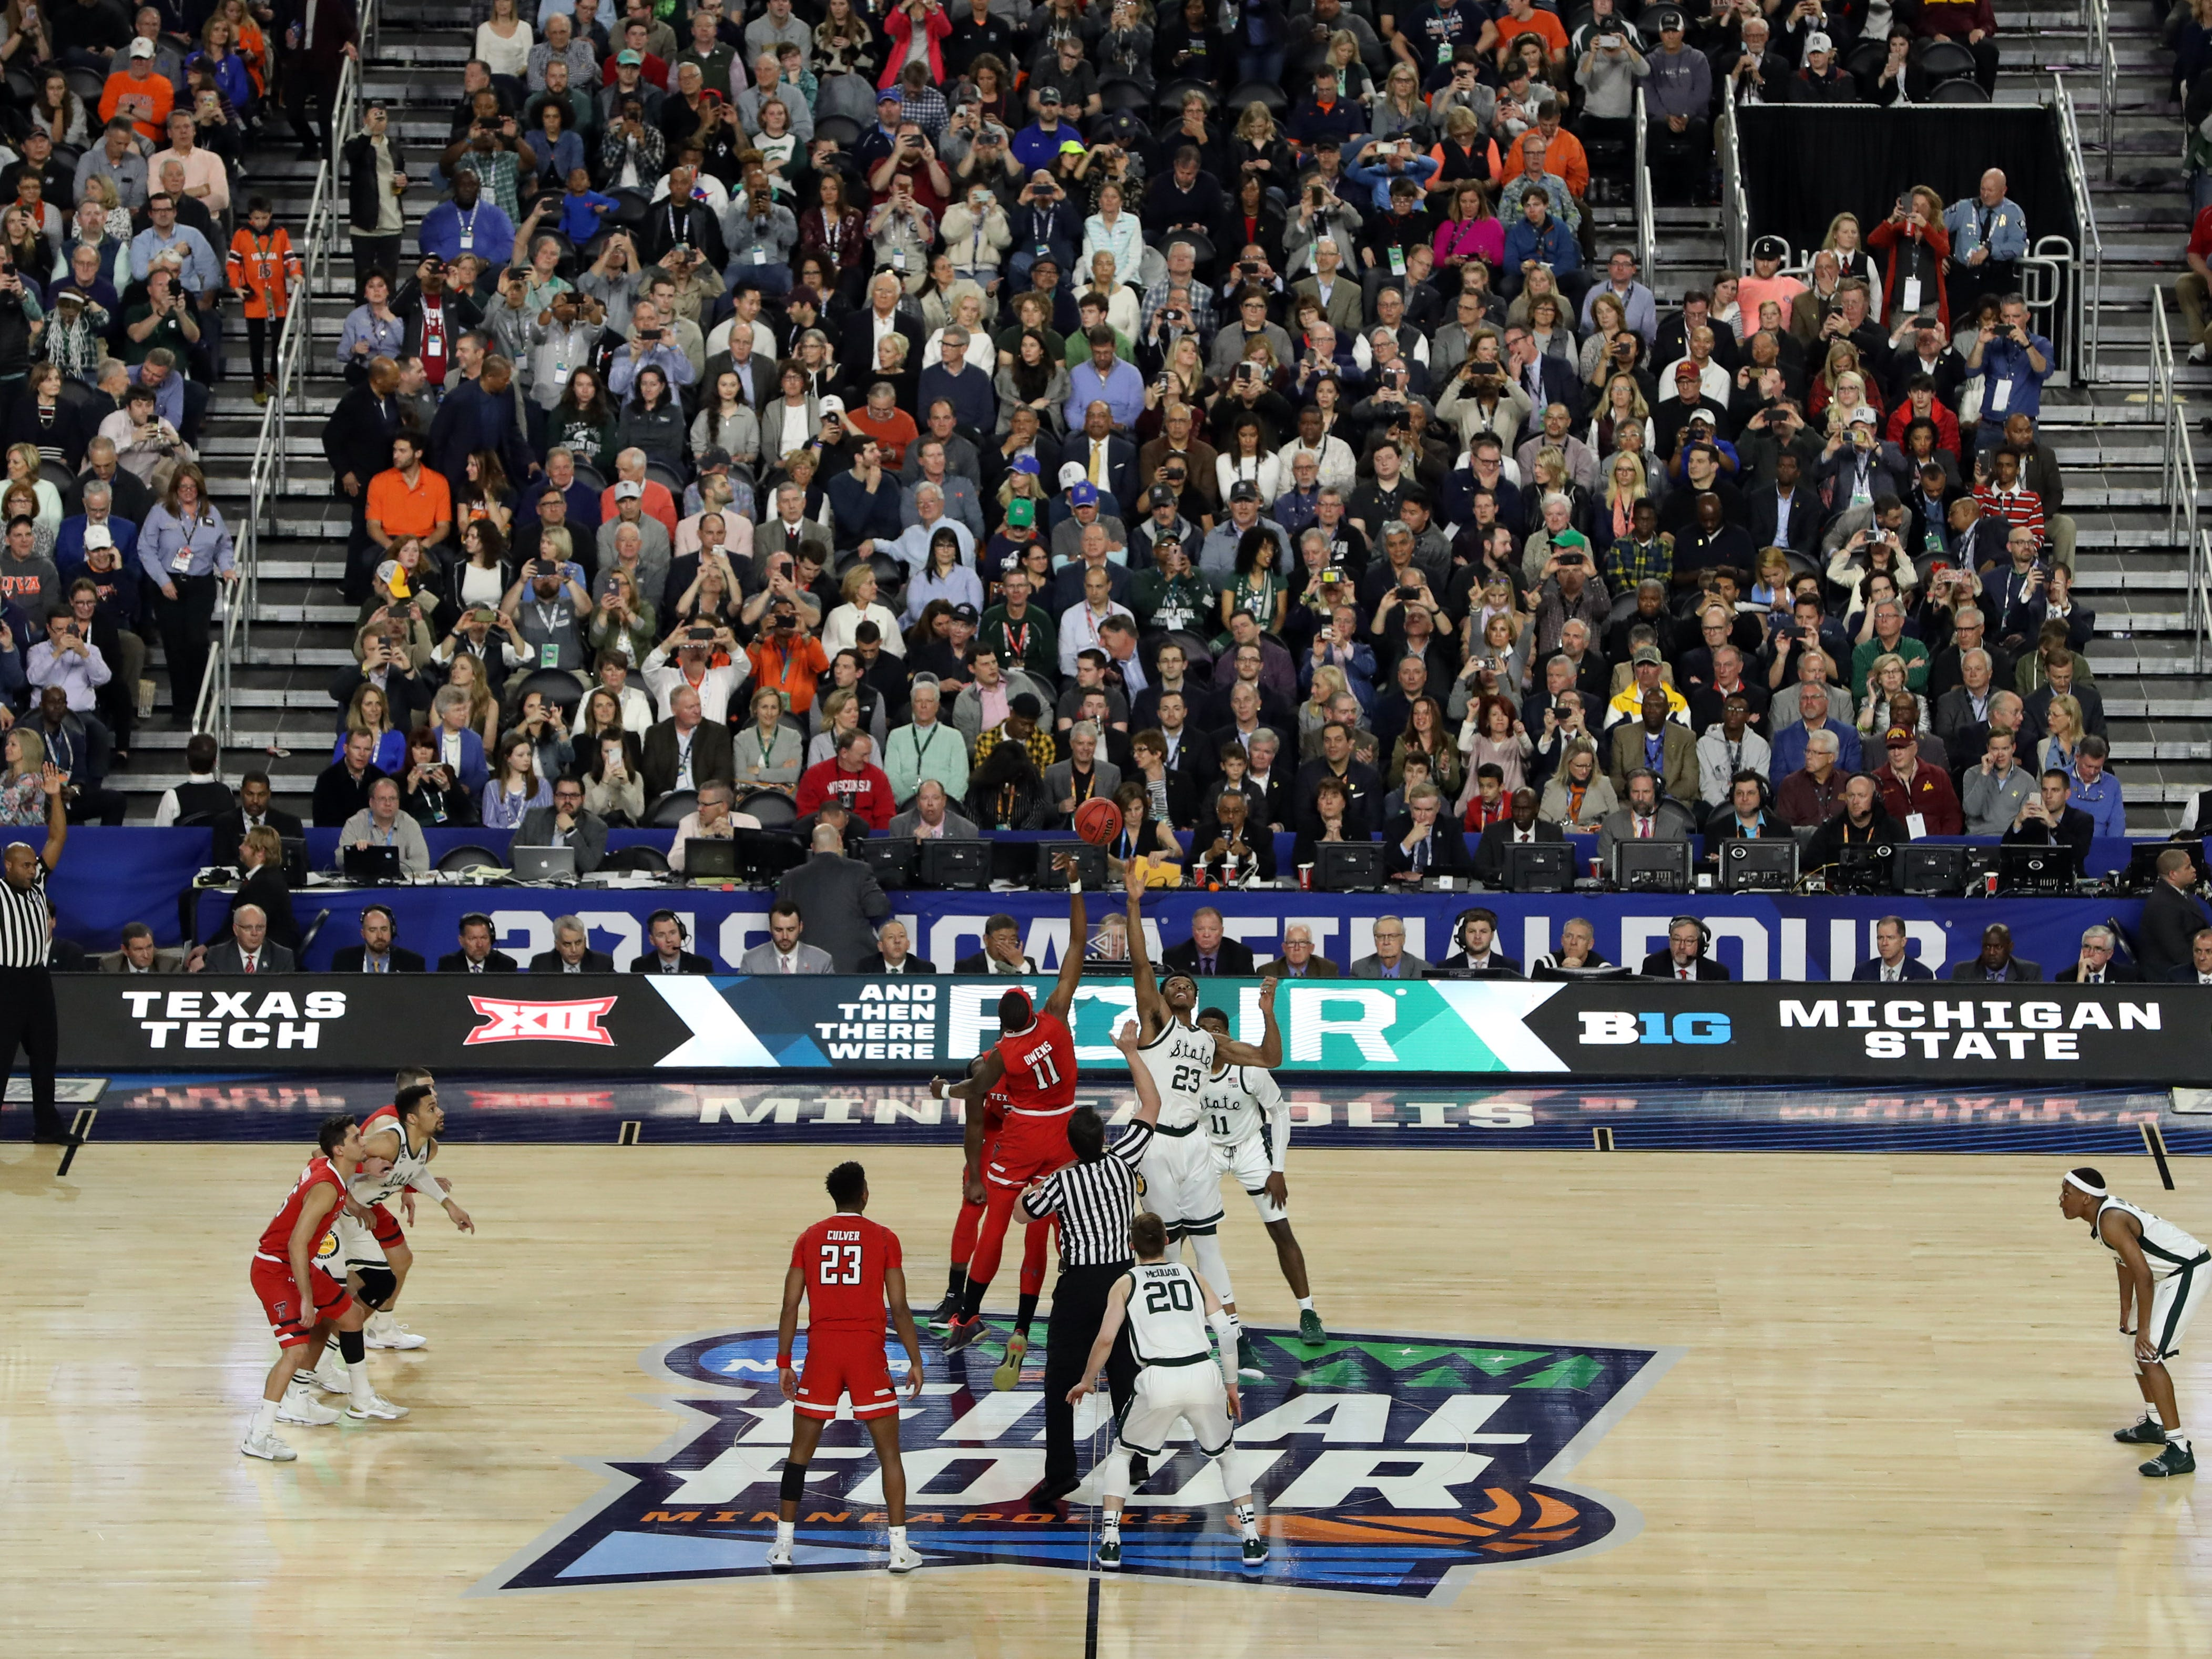 Apr 6, 2019; Minneapolis, MN, USA; The ball is tipped off in the semifinals of the 2019 men's Final Four game between the Michigan State Spartans and Texas Tech Red Raiders at US Bank Stadium. Mandatory Credit: Brace Hemmelgarn-USA TODAY Sports